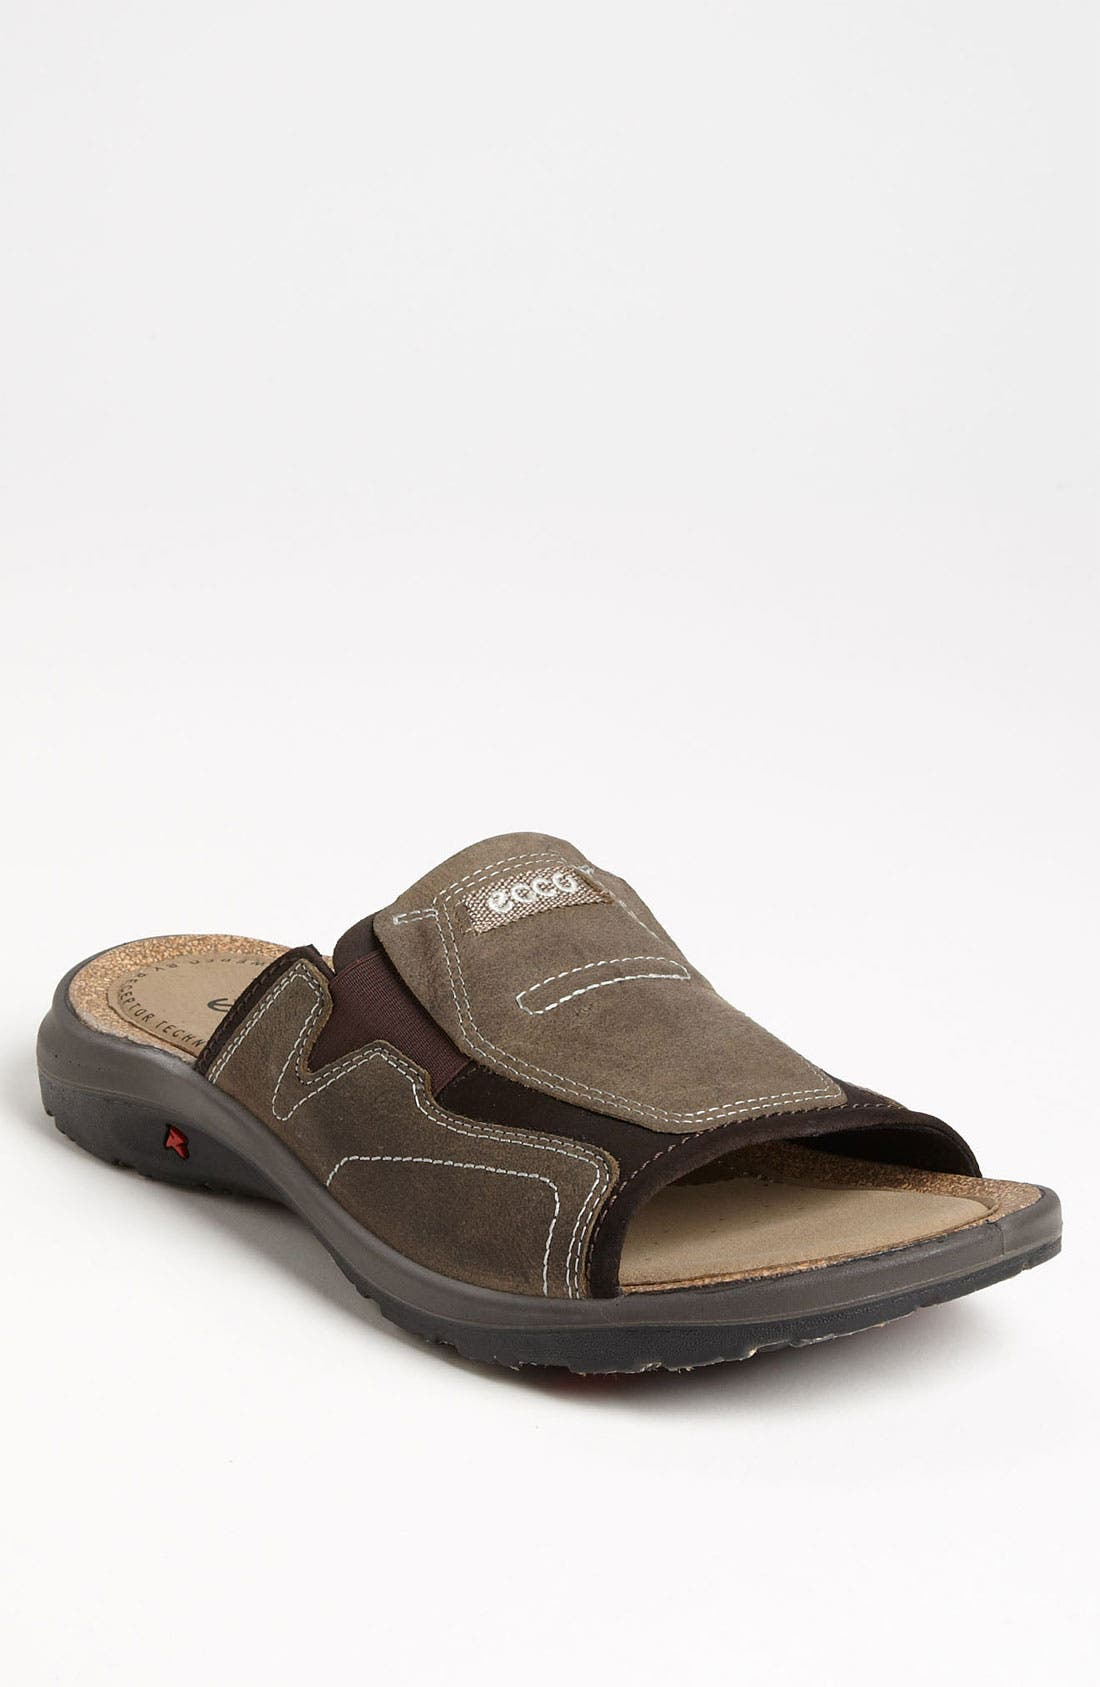 Alternate Image 1 Selected - ECCO 'Costa' Slide   (Men)